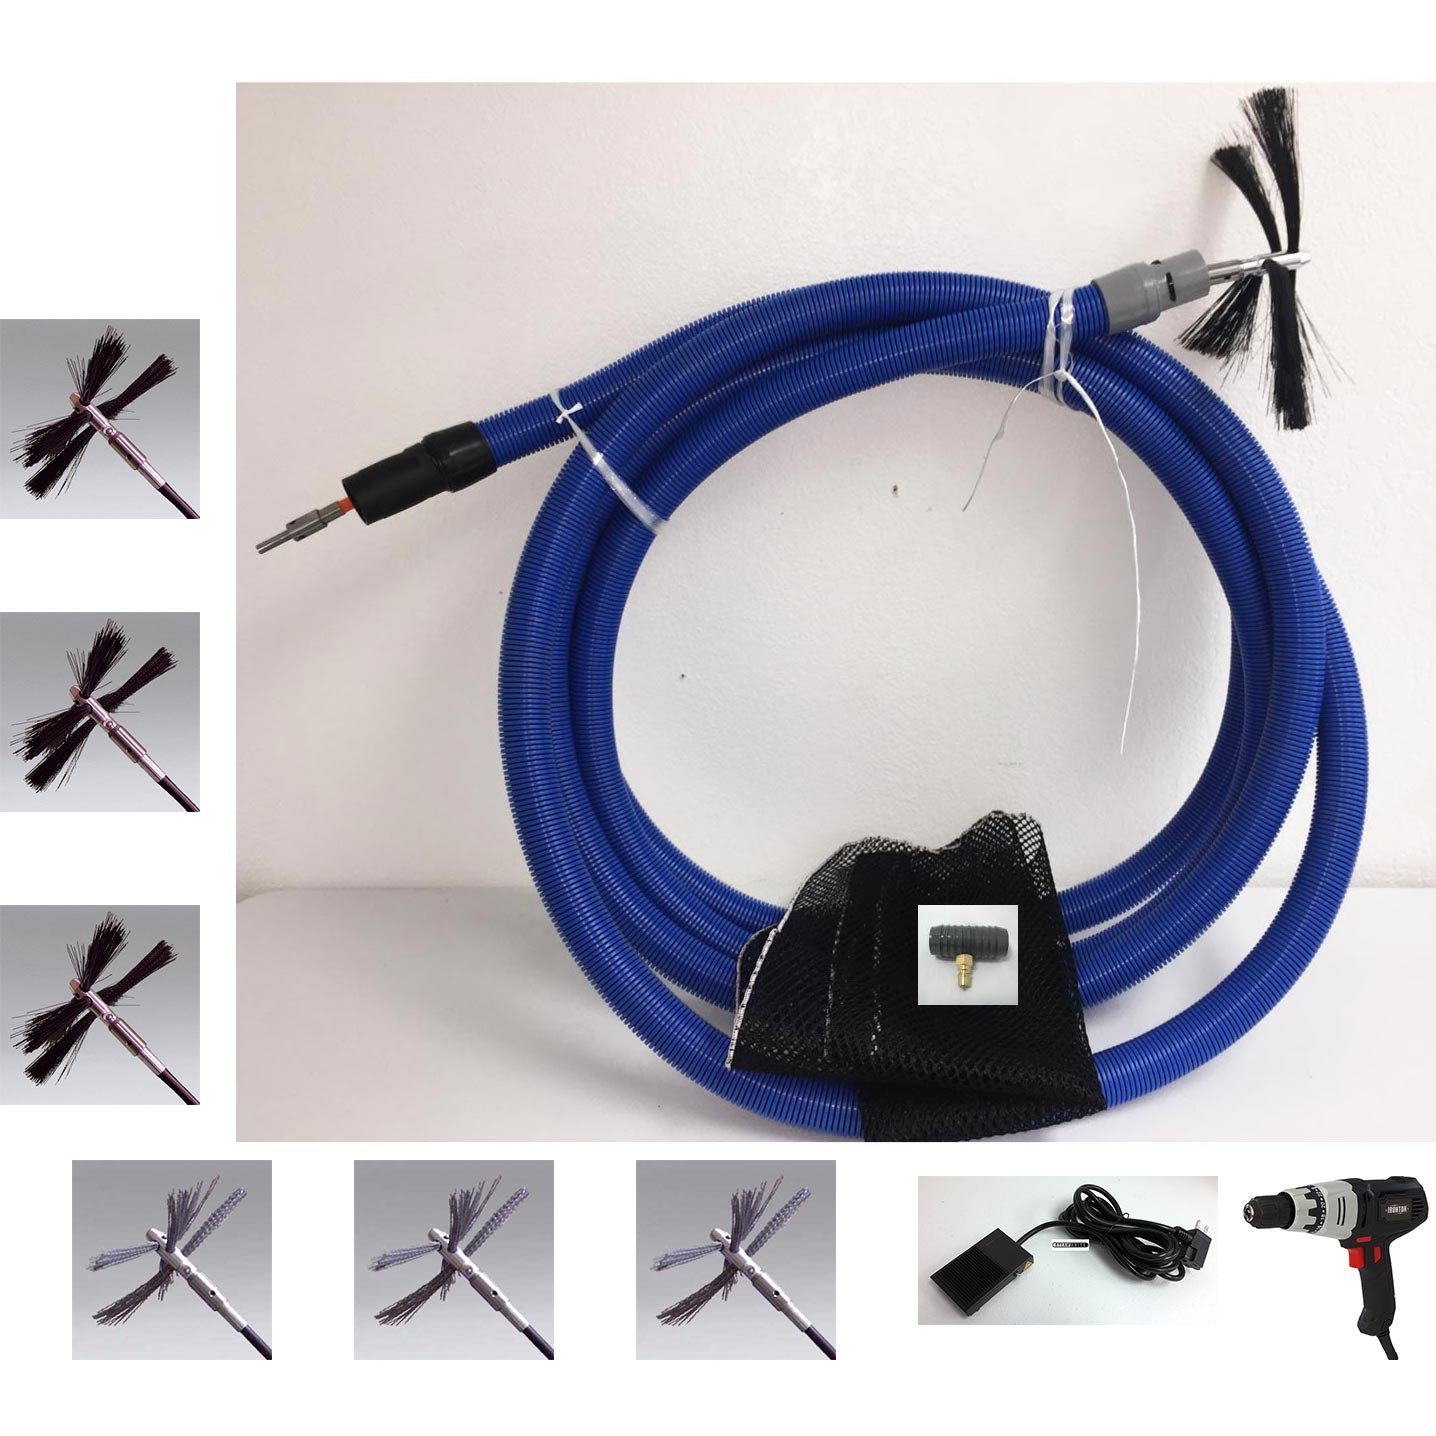 Clean Storm CE3049 TruckMaster 20 ft Truck Mount Accessory Air Duct Cleaning System w/ 7 Brushes AD101  CE2958D